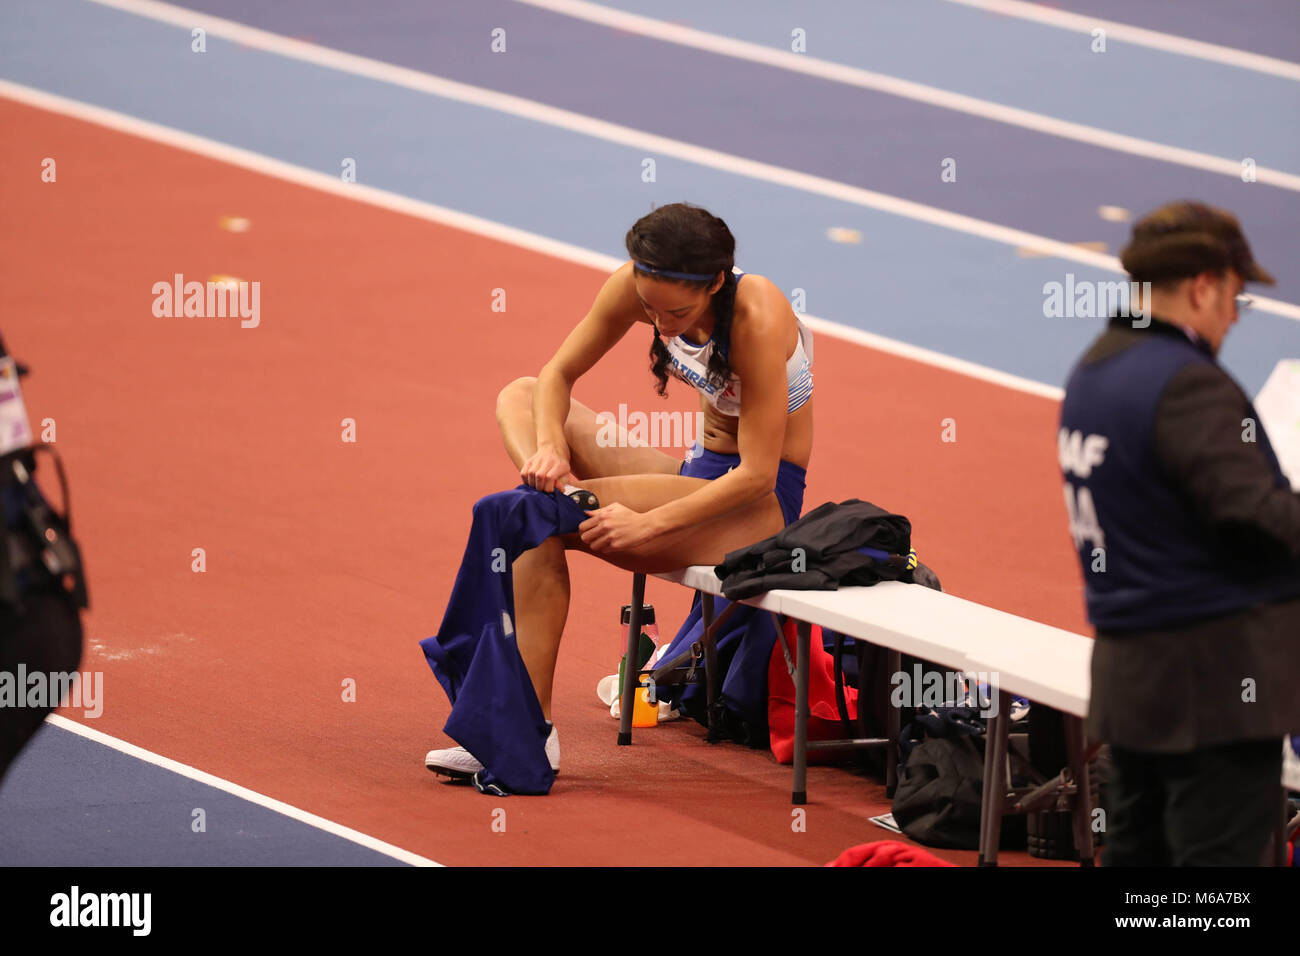 Birmingham, UK. 2nd Mar, 2018. Katarina JOHNSON-THOMPSON GREAT BRITAIN prepares to jump during the IAAF World Indoor - Stock Image